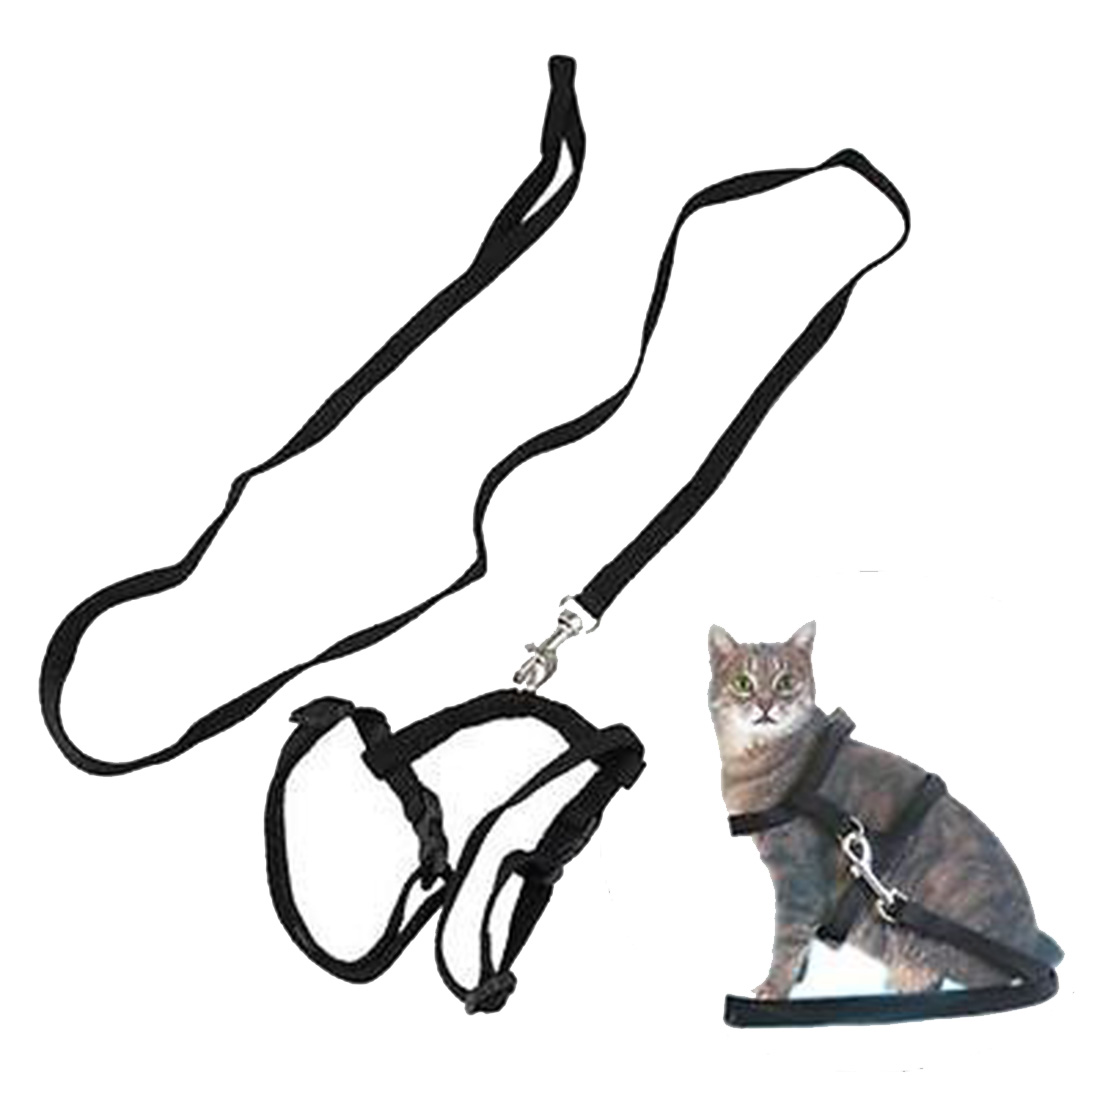 Dog Harness Plans